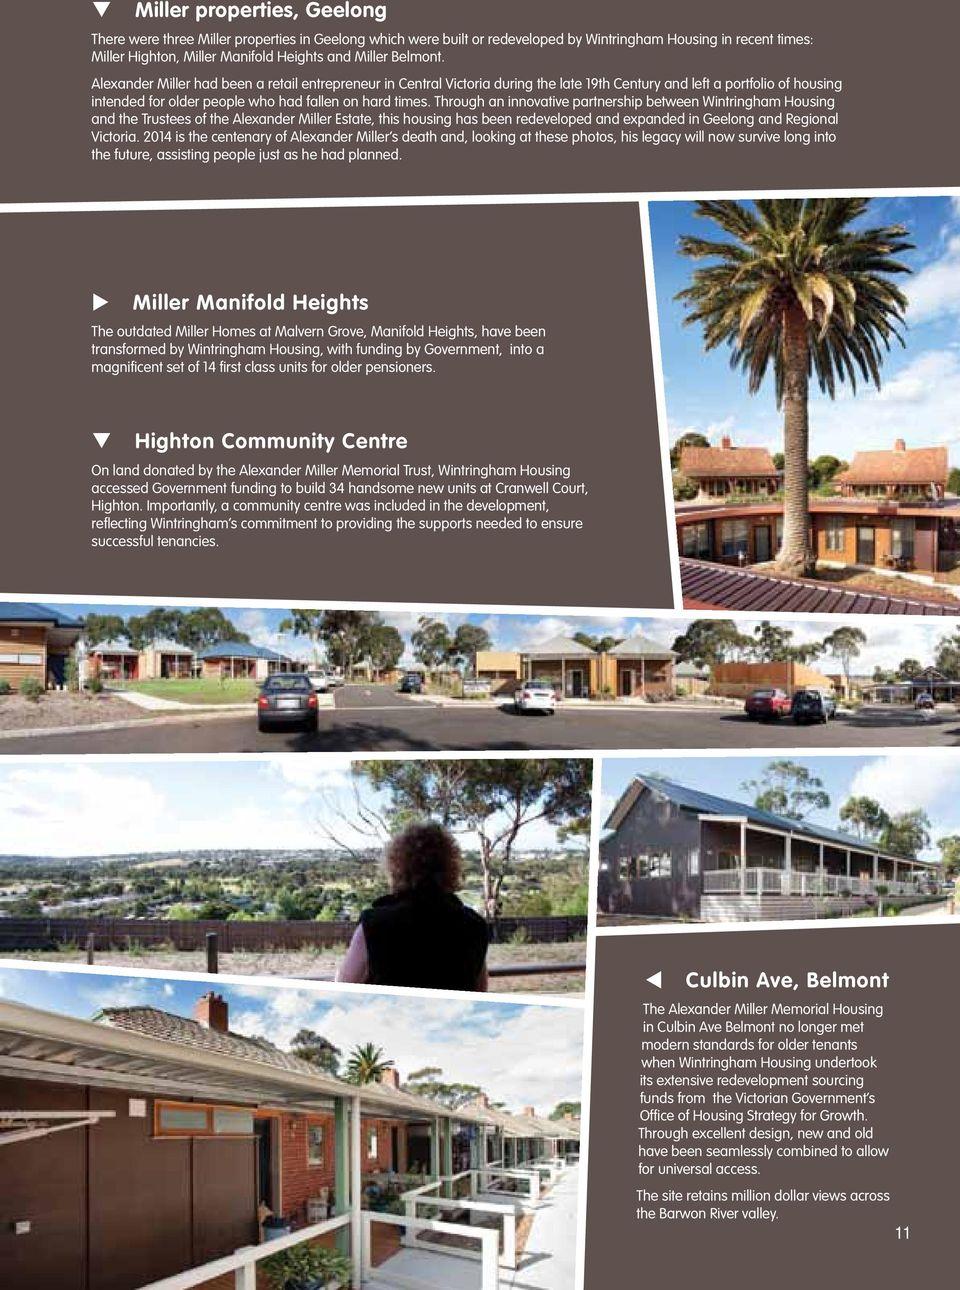 Through an innovative partnership between Wintringham Housing and the Trustees of the Alexander Miller Estate, this housing has been redeveloped and expanded in Geelong and Regional Victoria.